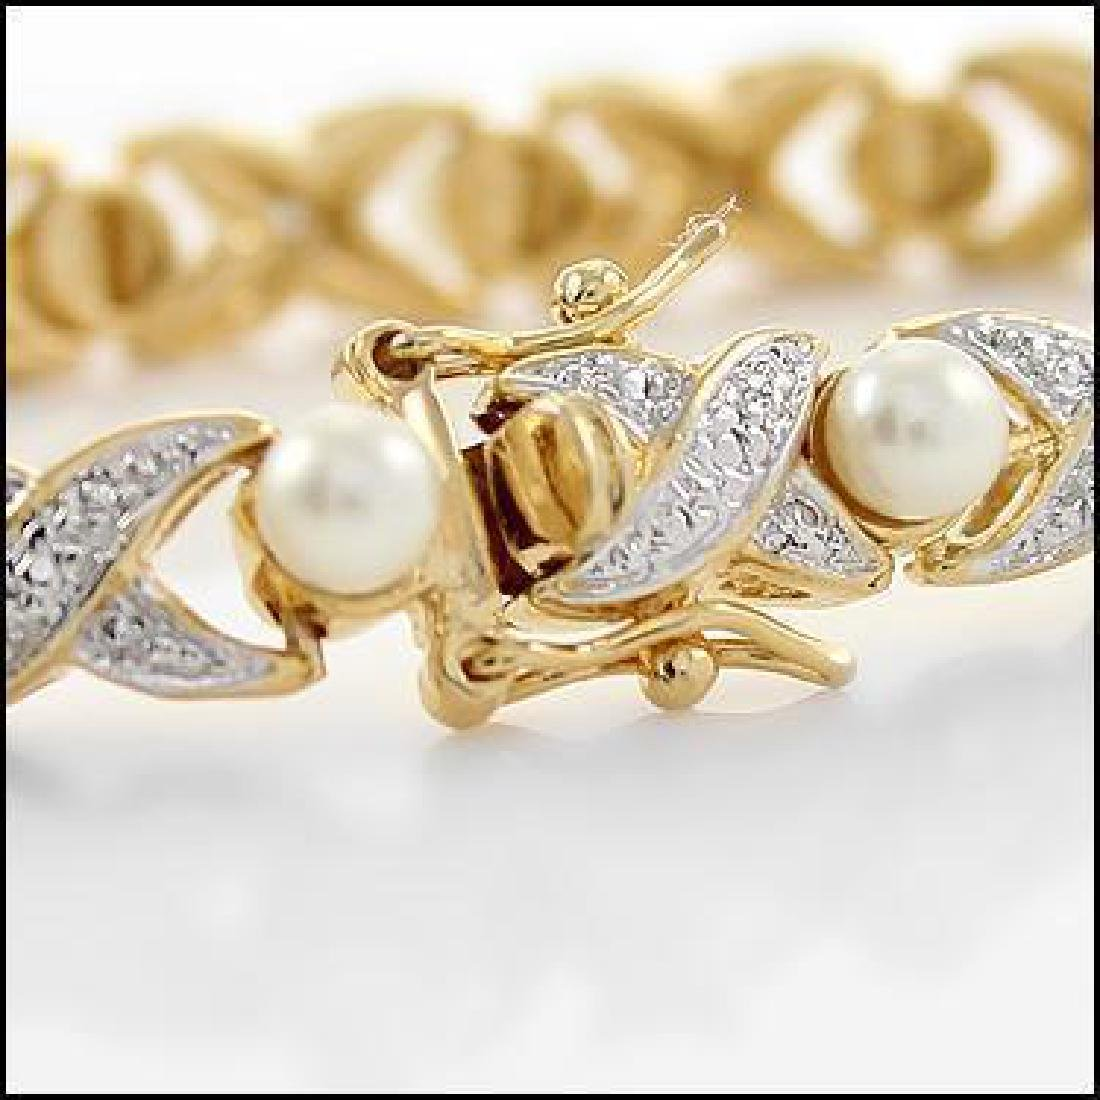 6mm Freshwater Pearl and Diamond Gold Bracelet - 2